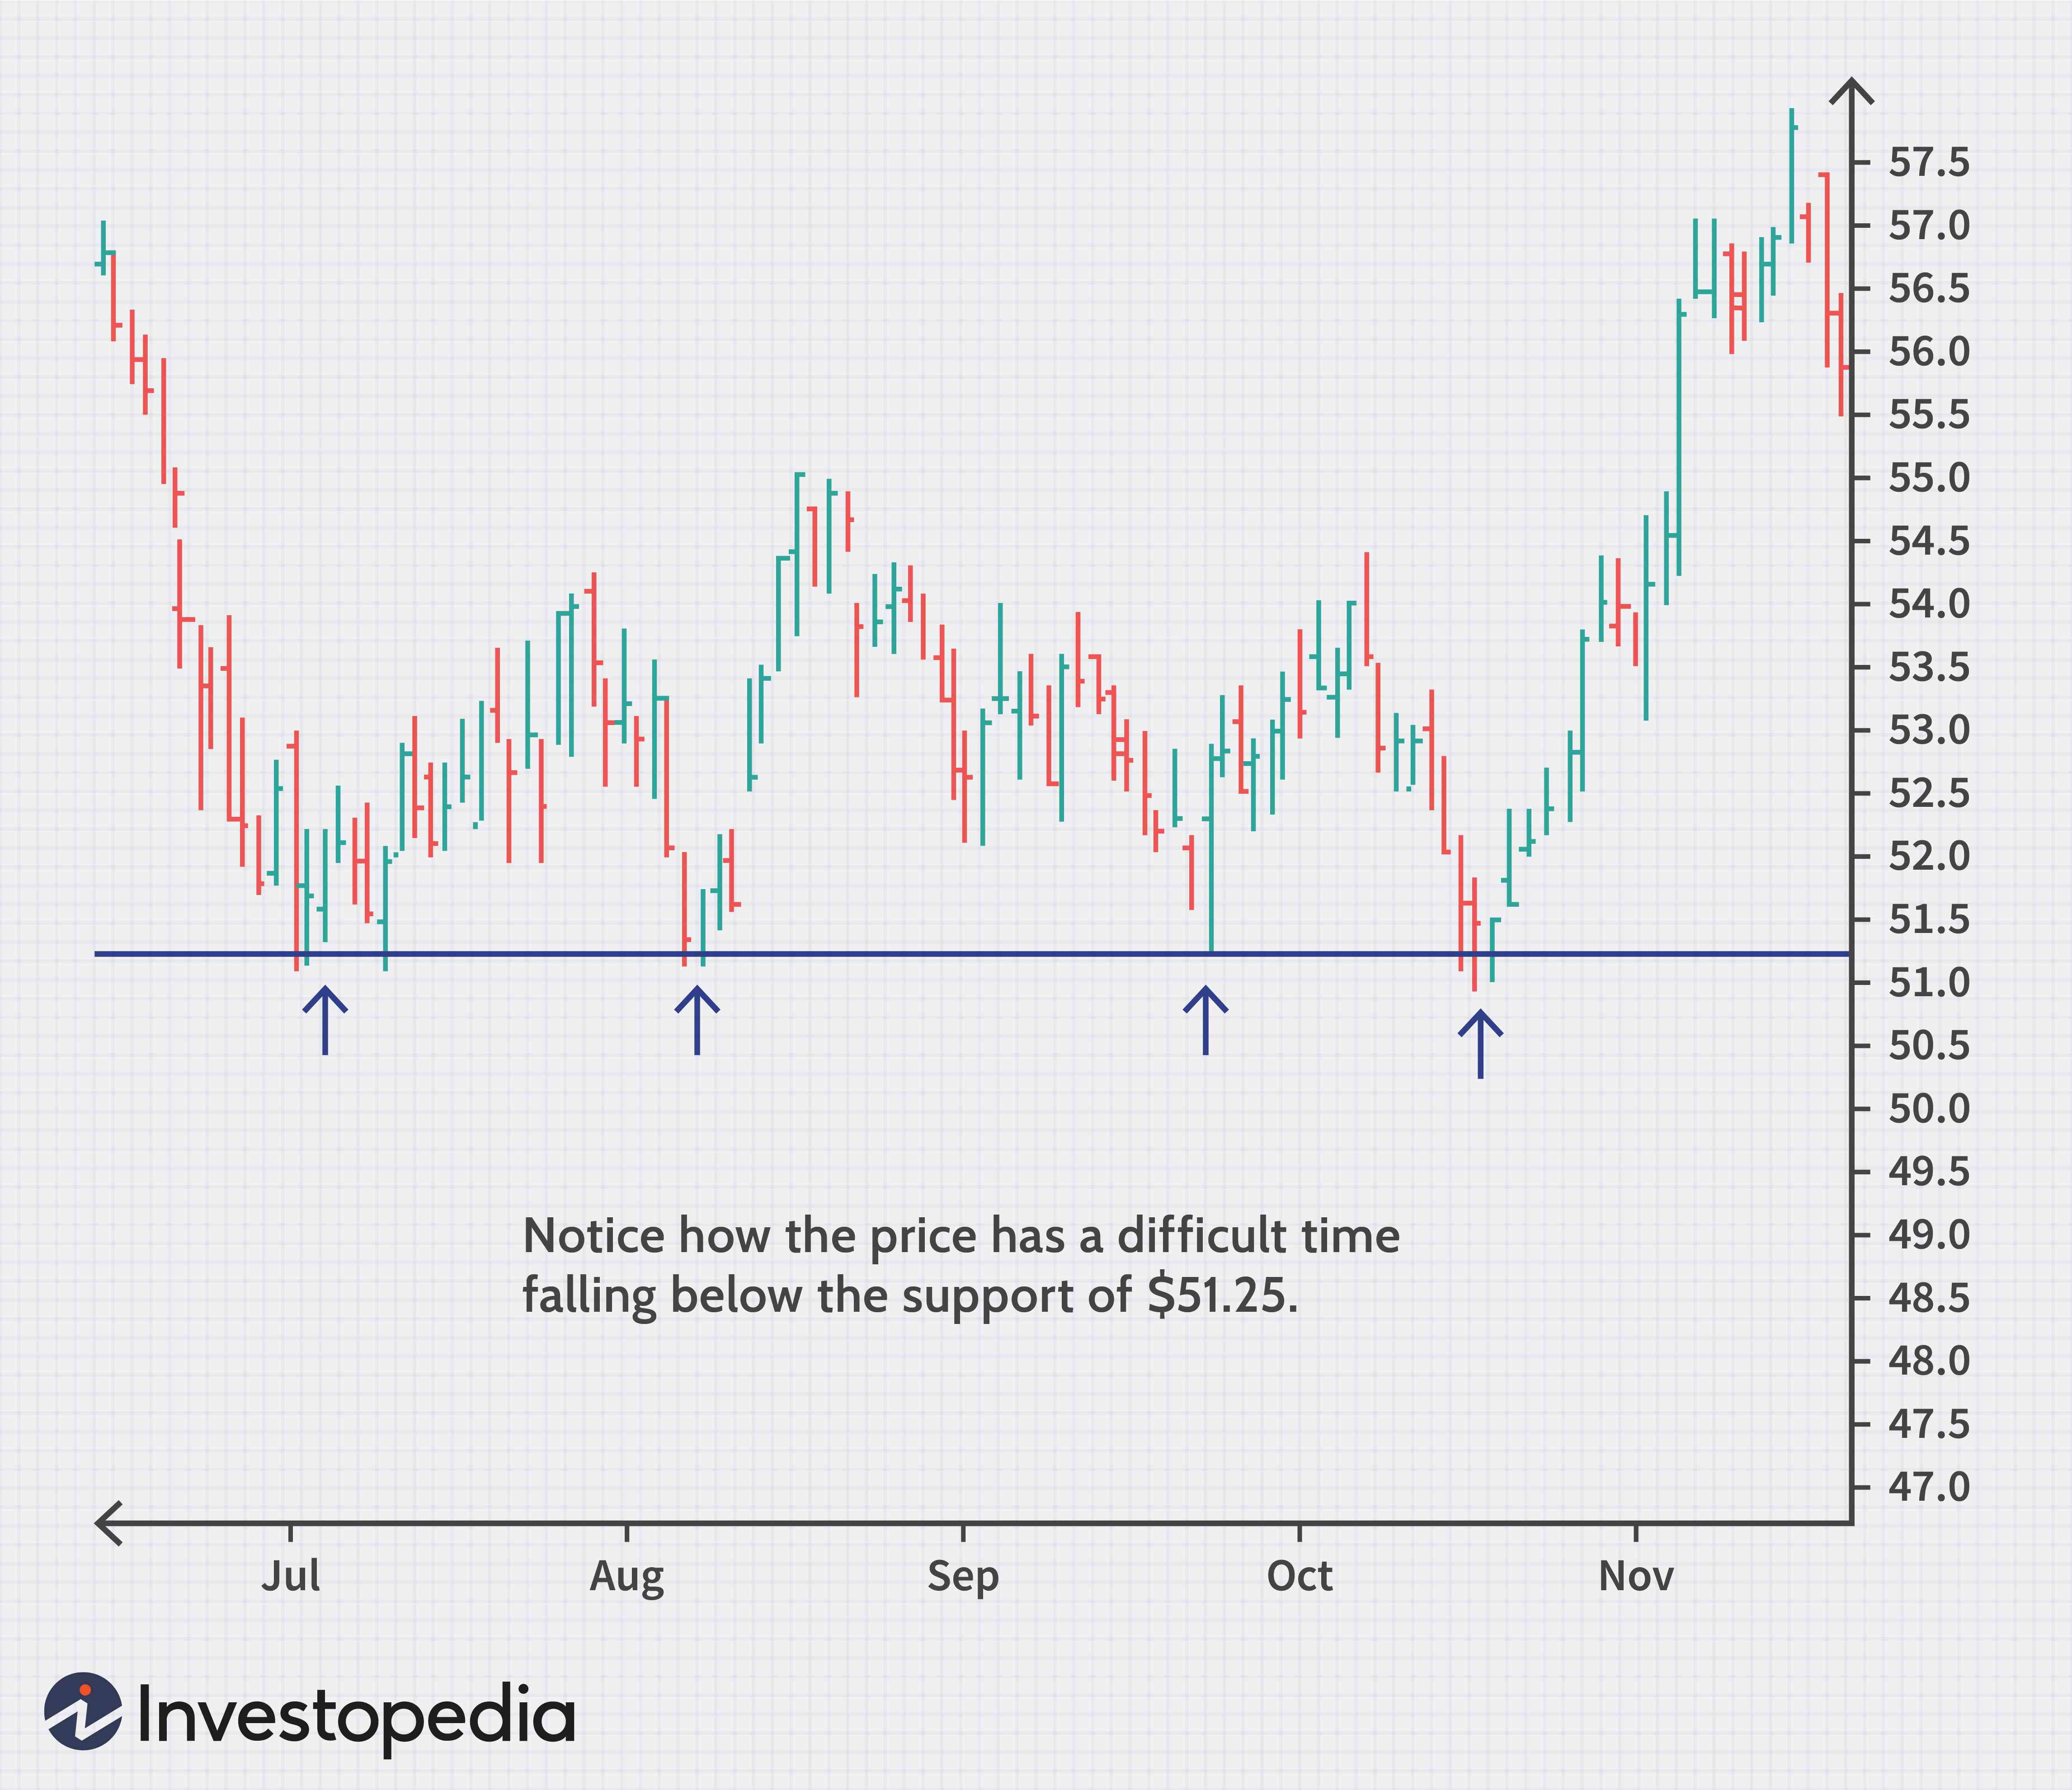 Technical analysis investopedia video on betting irving betfair and betdaq betting